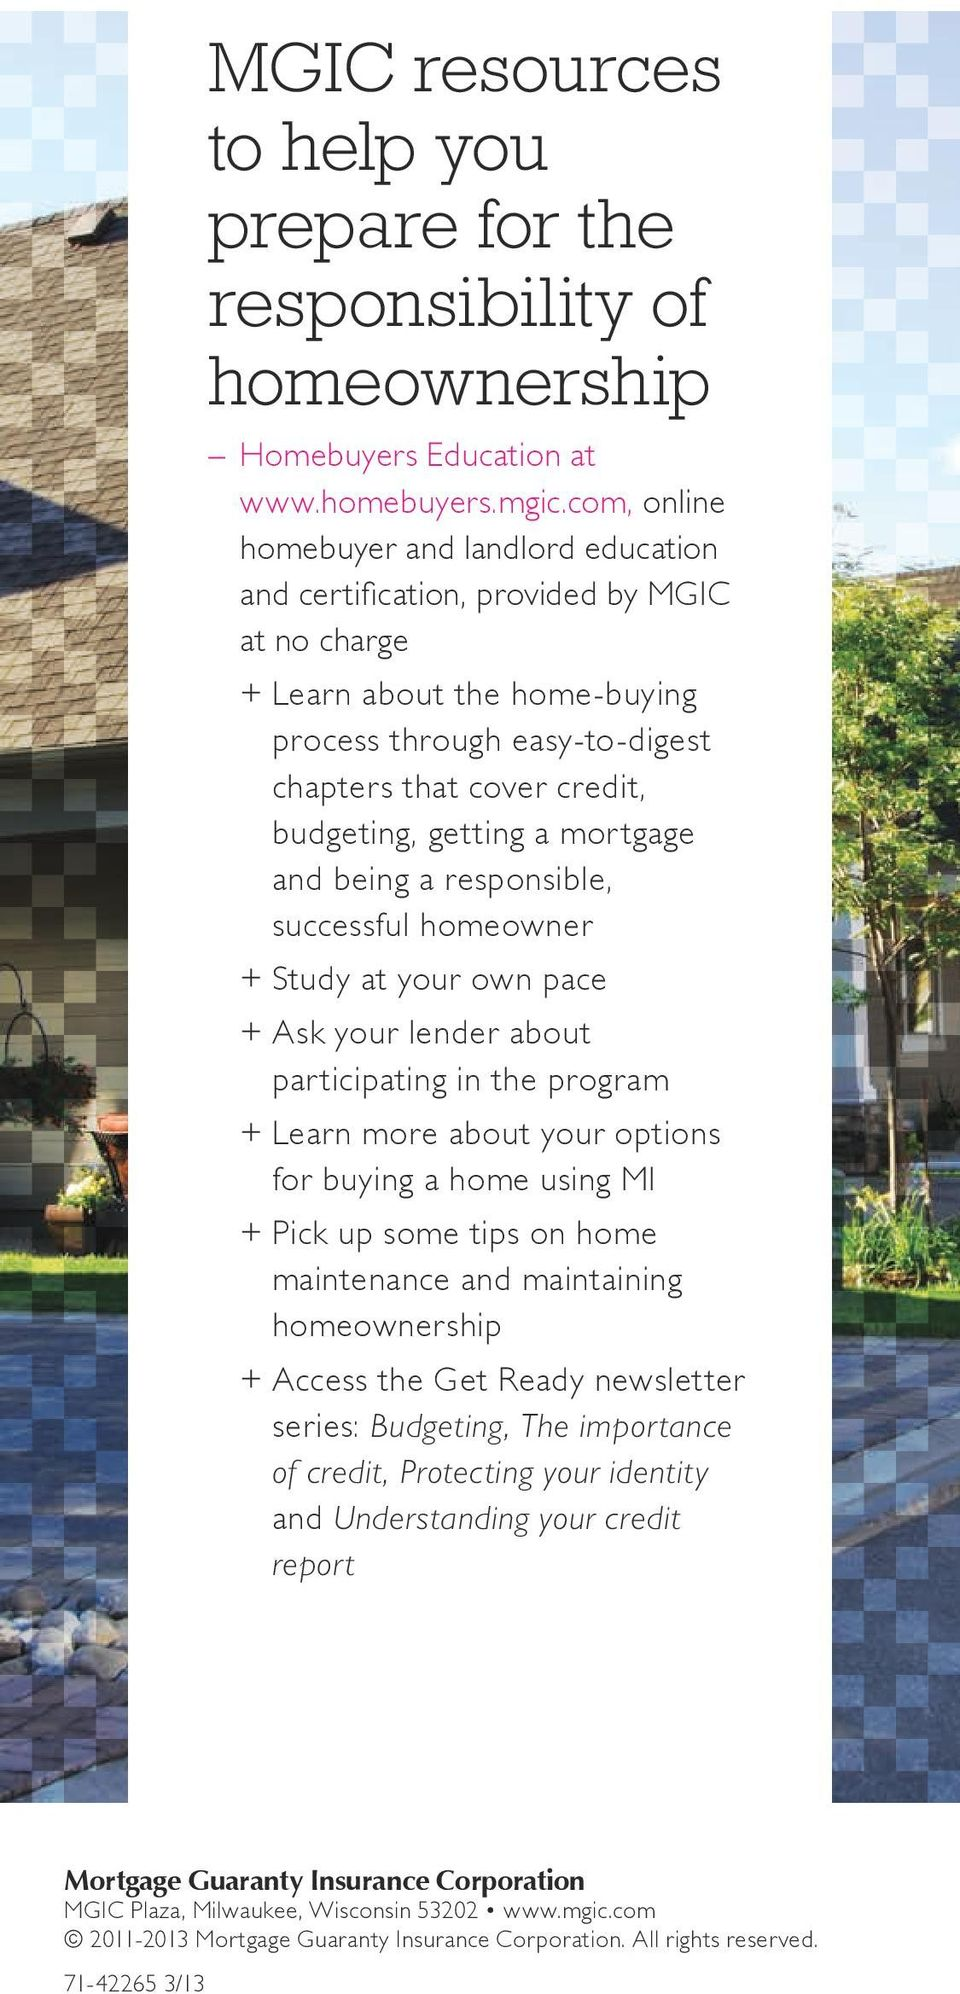 getting a mortgage and being a responsible, successful homeowner + + Study at your own pace + + Ask your lender about participating in the program + + Learn more about your options for buying a home